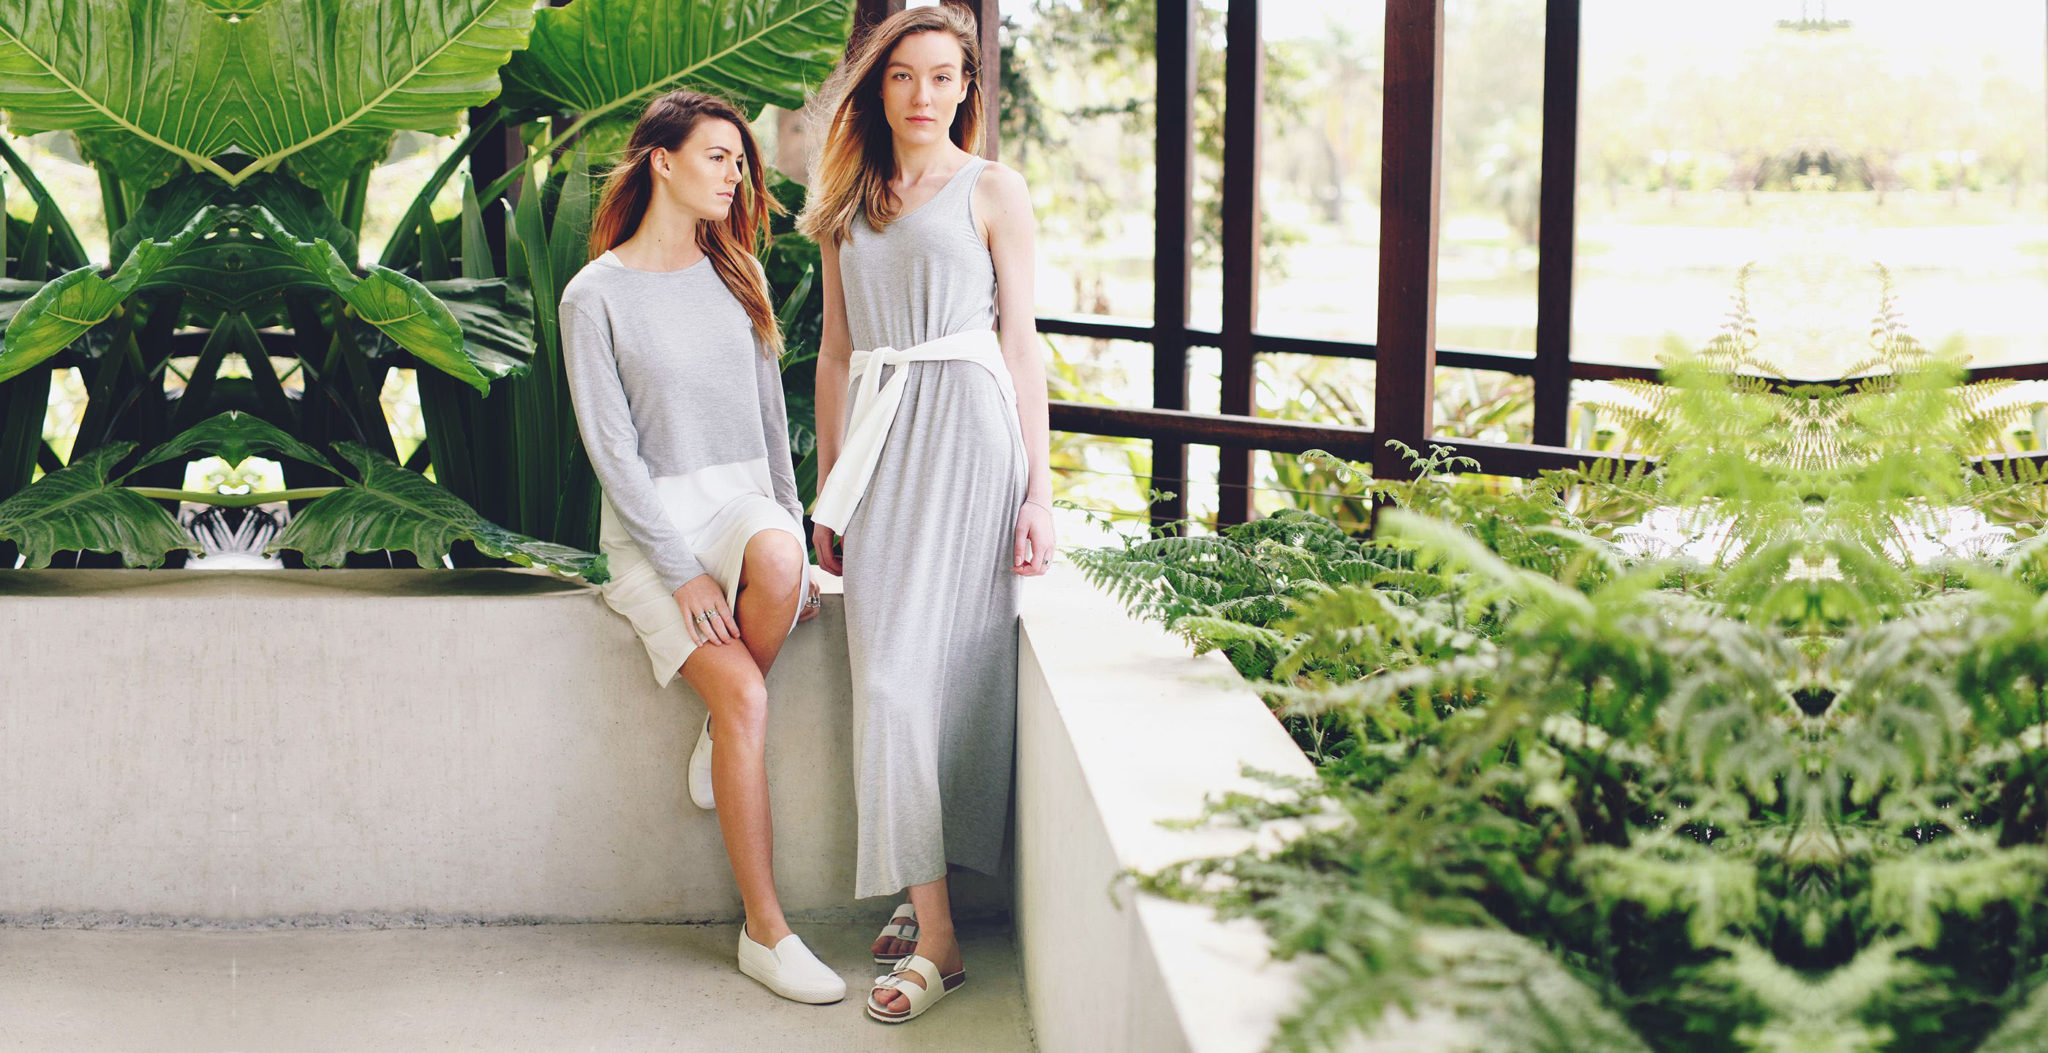 12 Australian Ethical Fashion Brands You Can Shop For